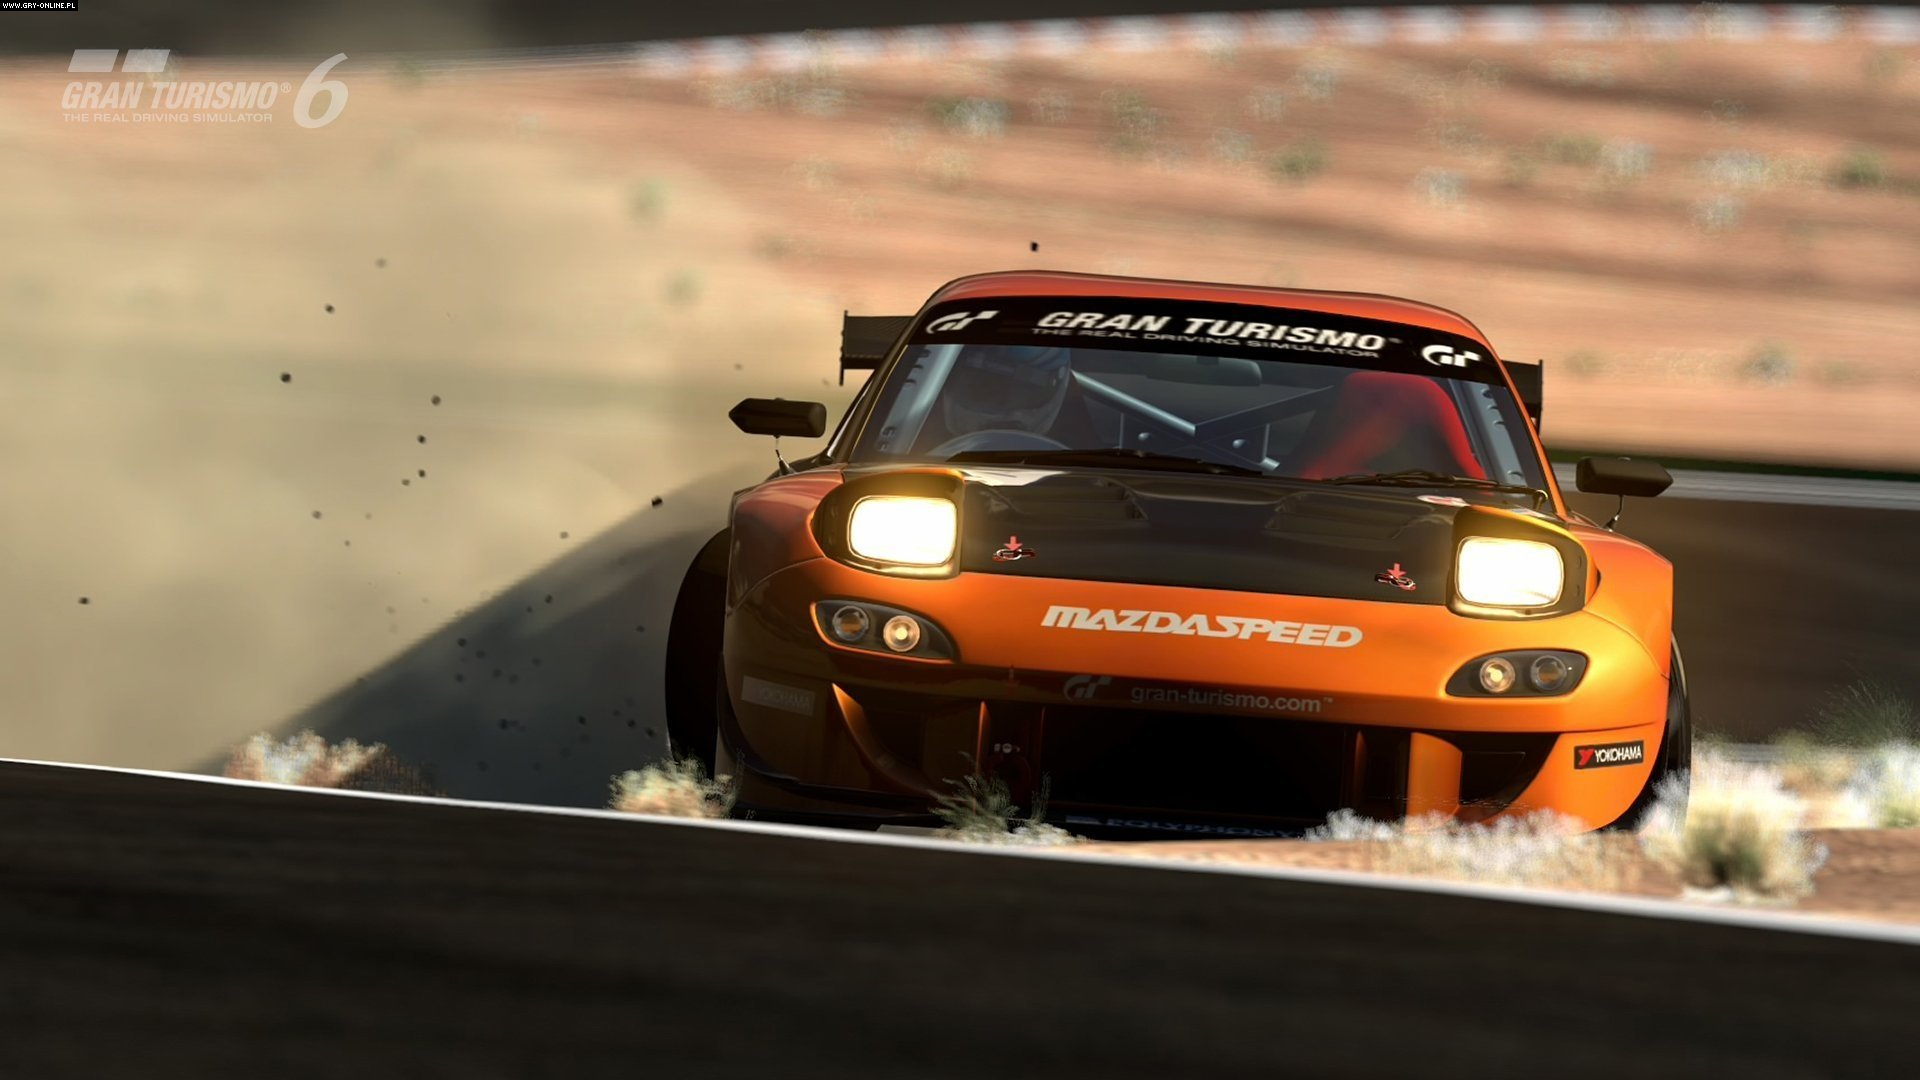 Gran turismo 6 full hd wallpaper and background image 1920x1080 video game gran turismo 6 wallpaper voltagebd Gallery